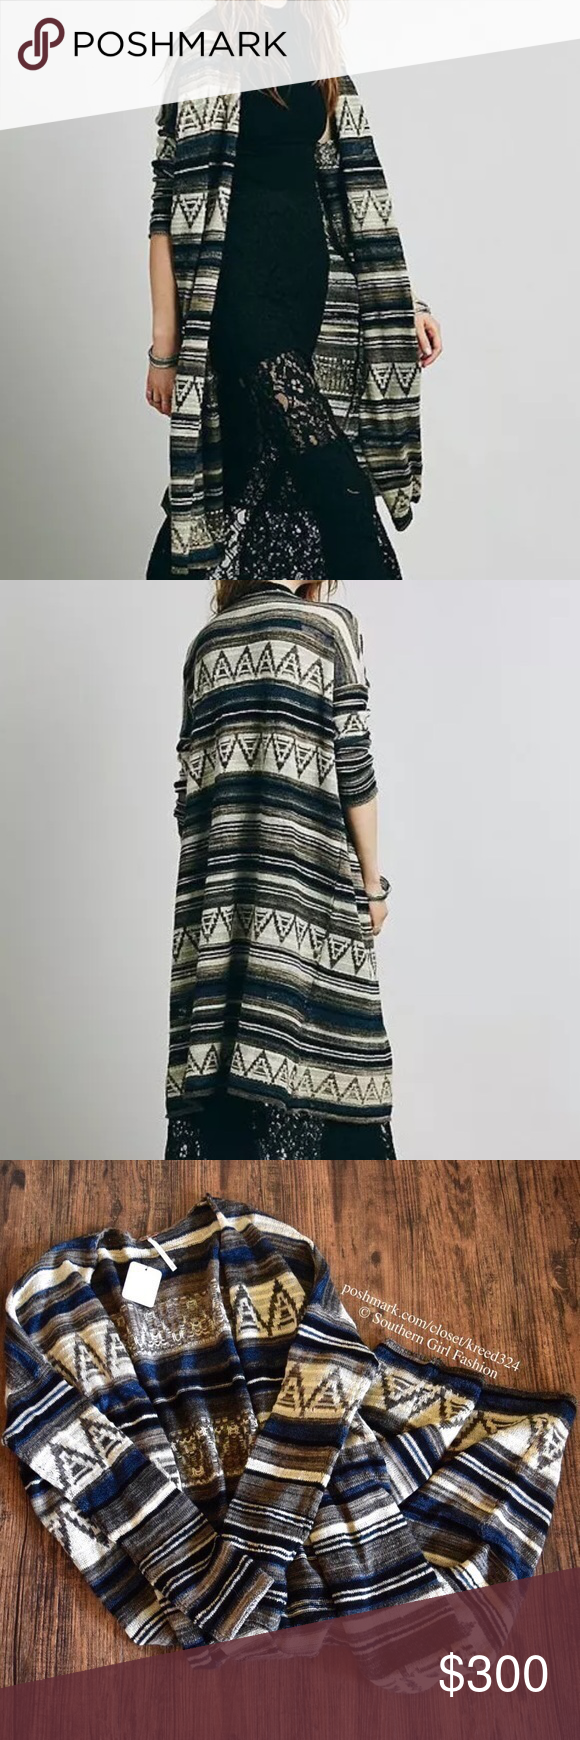 FREE PEOPLE Cardigan Long Sweater Jacket Maxi Thin Size XS. New with tags. $168 Retail + Tax.   • Long, patterned maxi cardigan featuring an open, draped silhouette.  • Unlined; Perfect for layering or throwing on over your favorite tee.  • Comfortable, true to size.  • Acrylic, wool, nylon, alpaca, rayon, linen. • Measurements provided in comment(s) section below.  {Southern Girl Fashion - Closet Policy}   ✔️ Same-Business-Day Shipping (10am CT). ✔️ Reasonable best offer considered when…